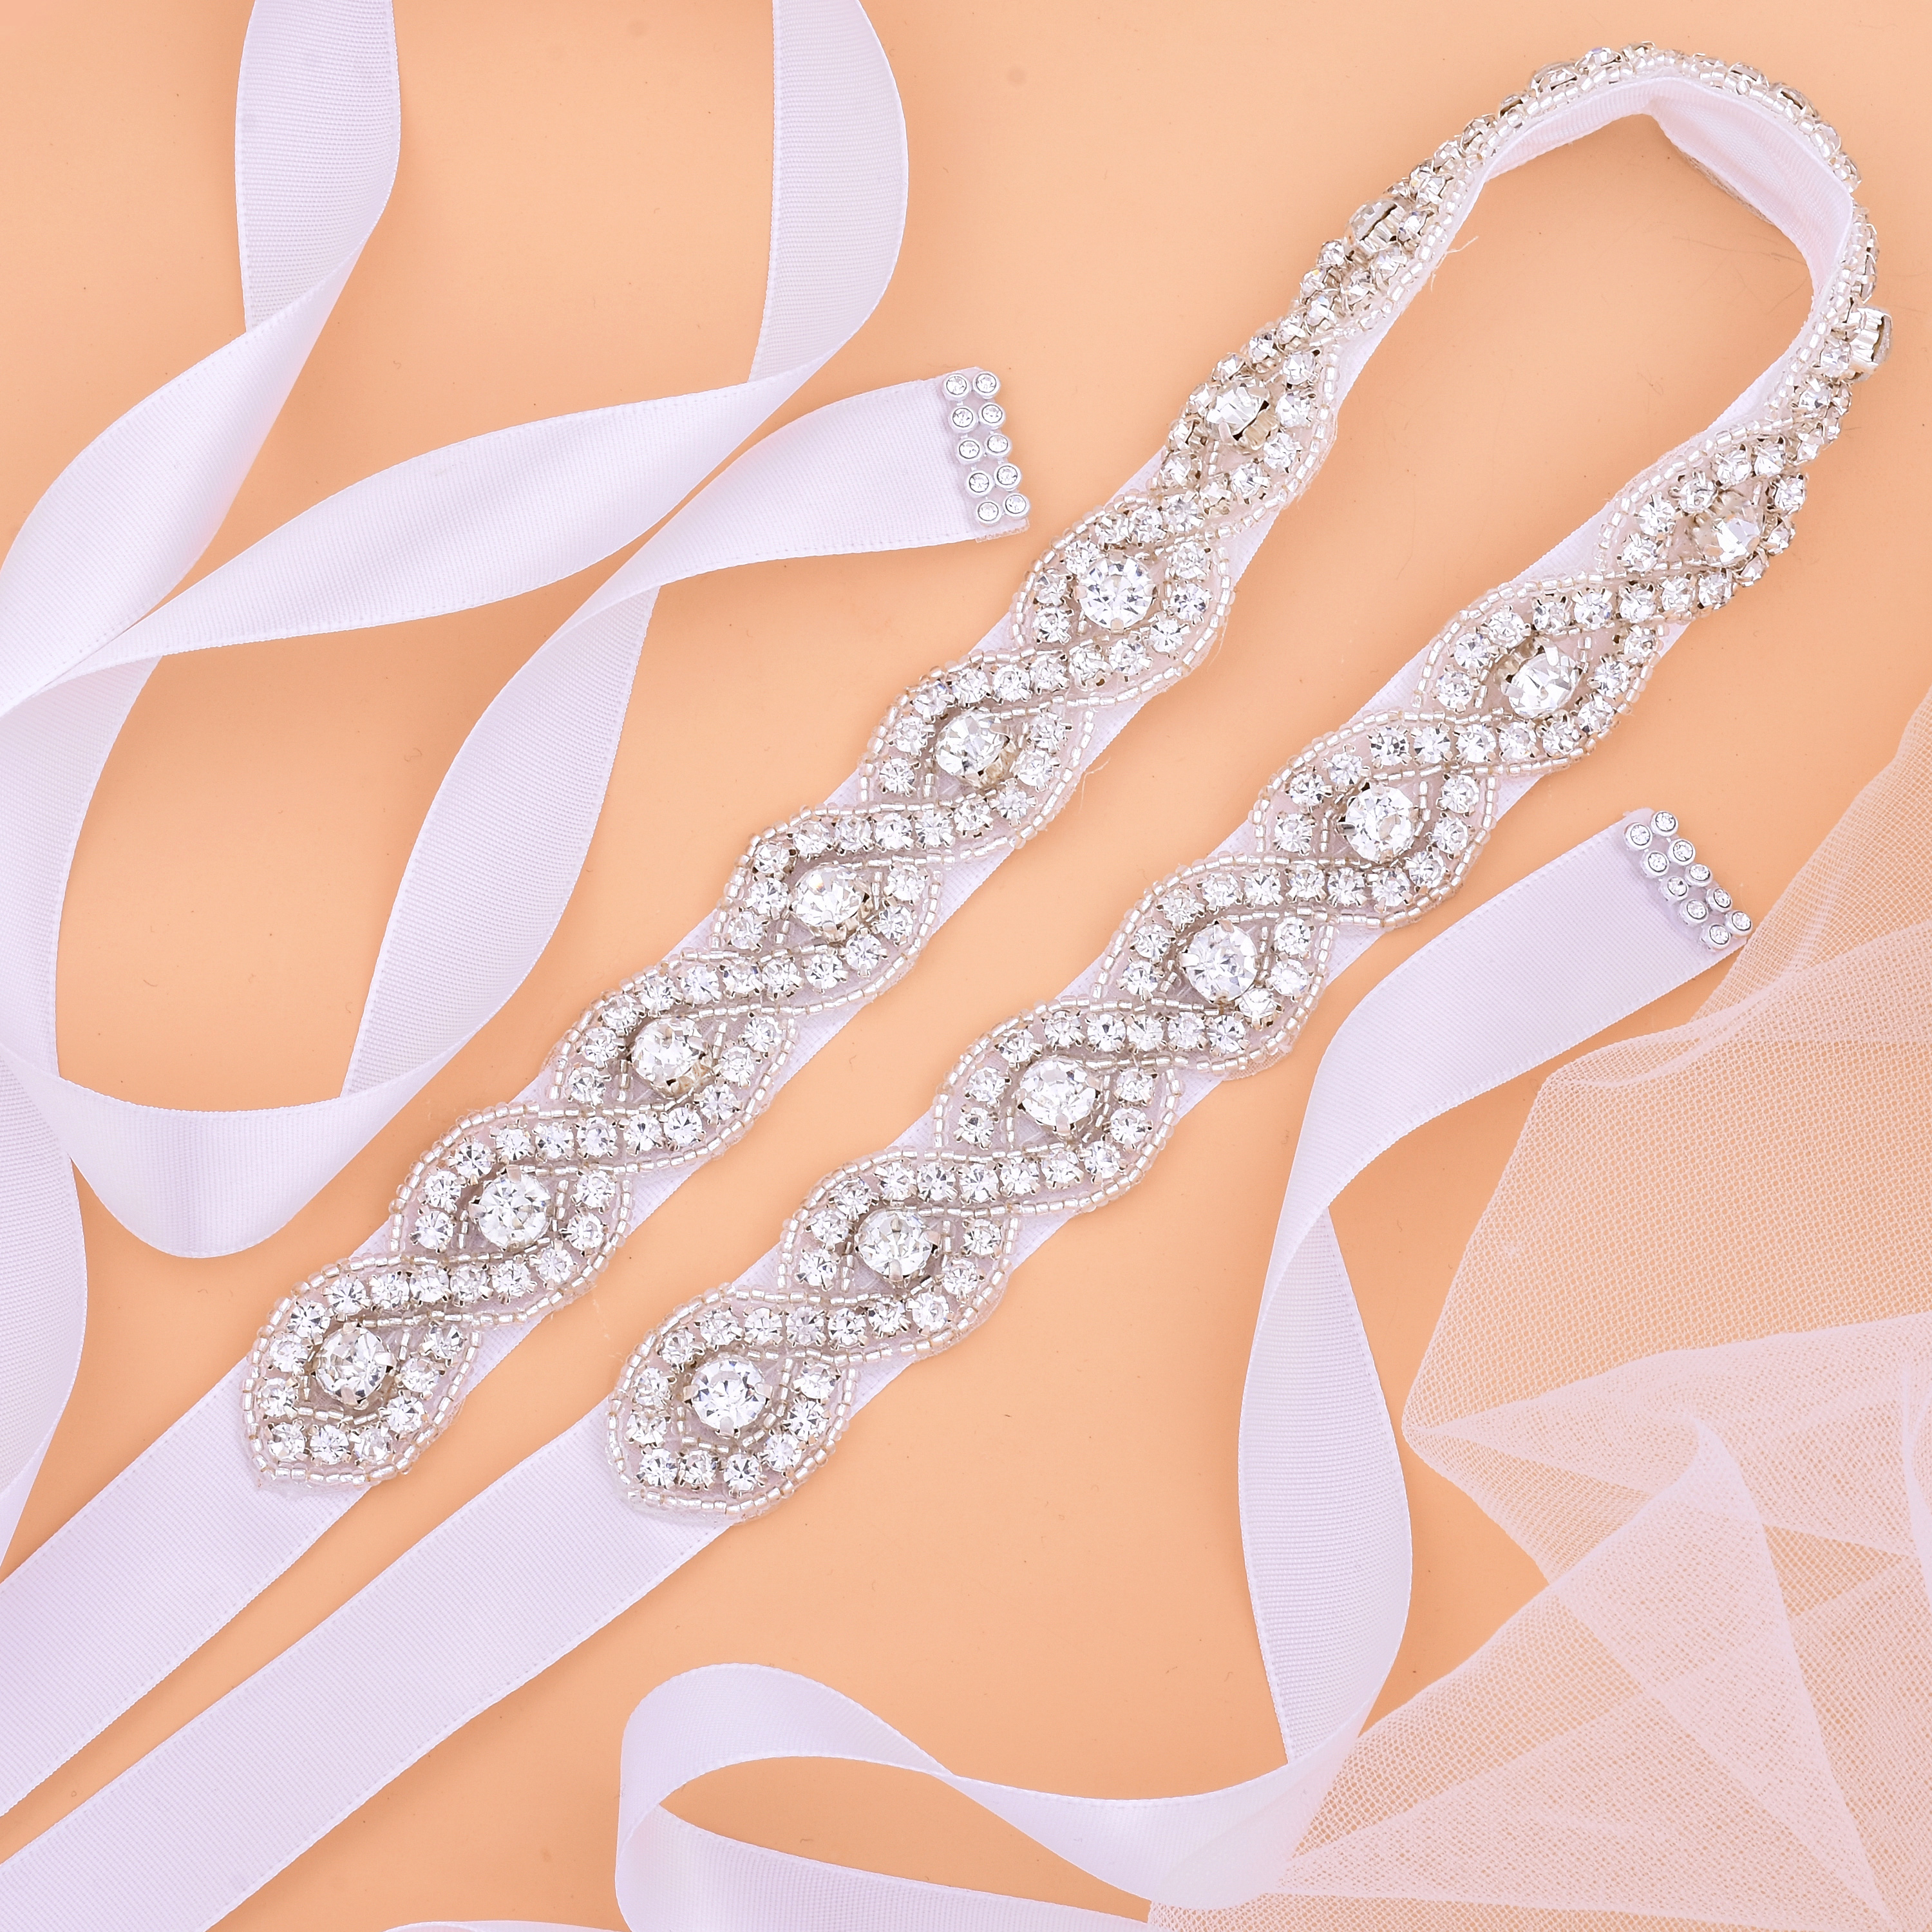 Diamond Wedding Belts Crystal Rhinestones Belts Bridesmaid Bridal Dresses Accessories Waistband Sashes Ceinture Mariage